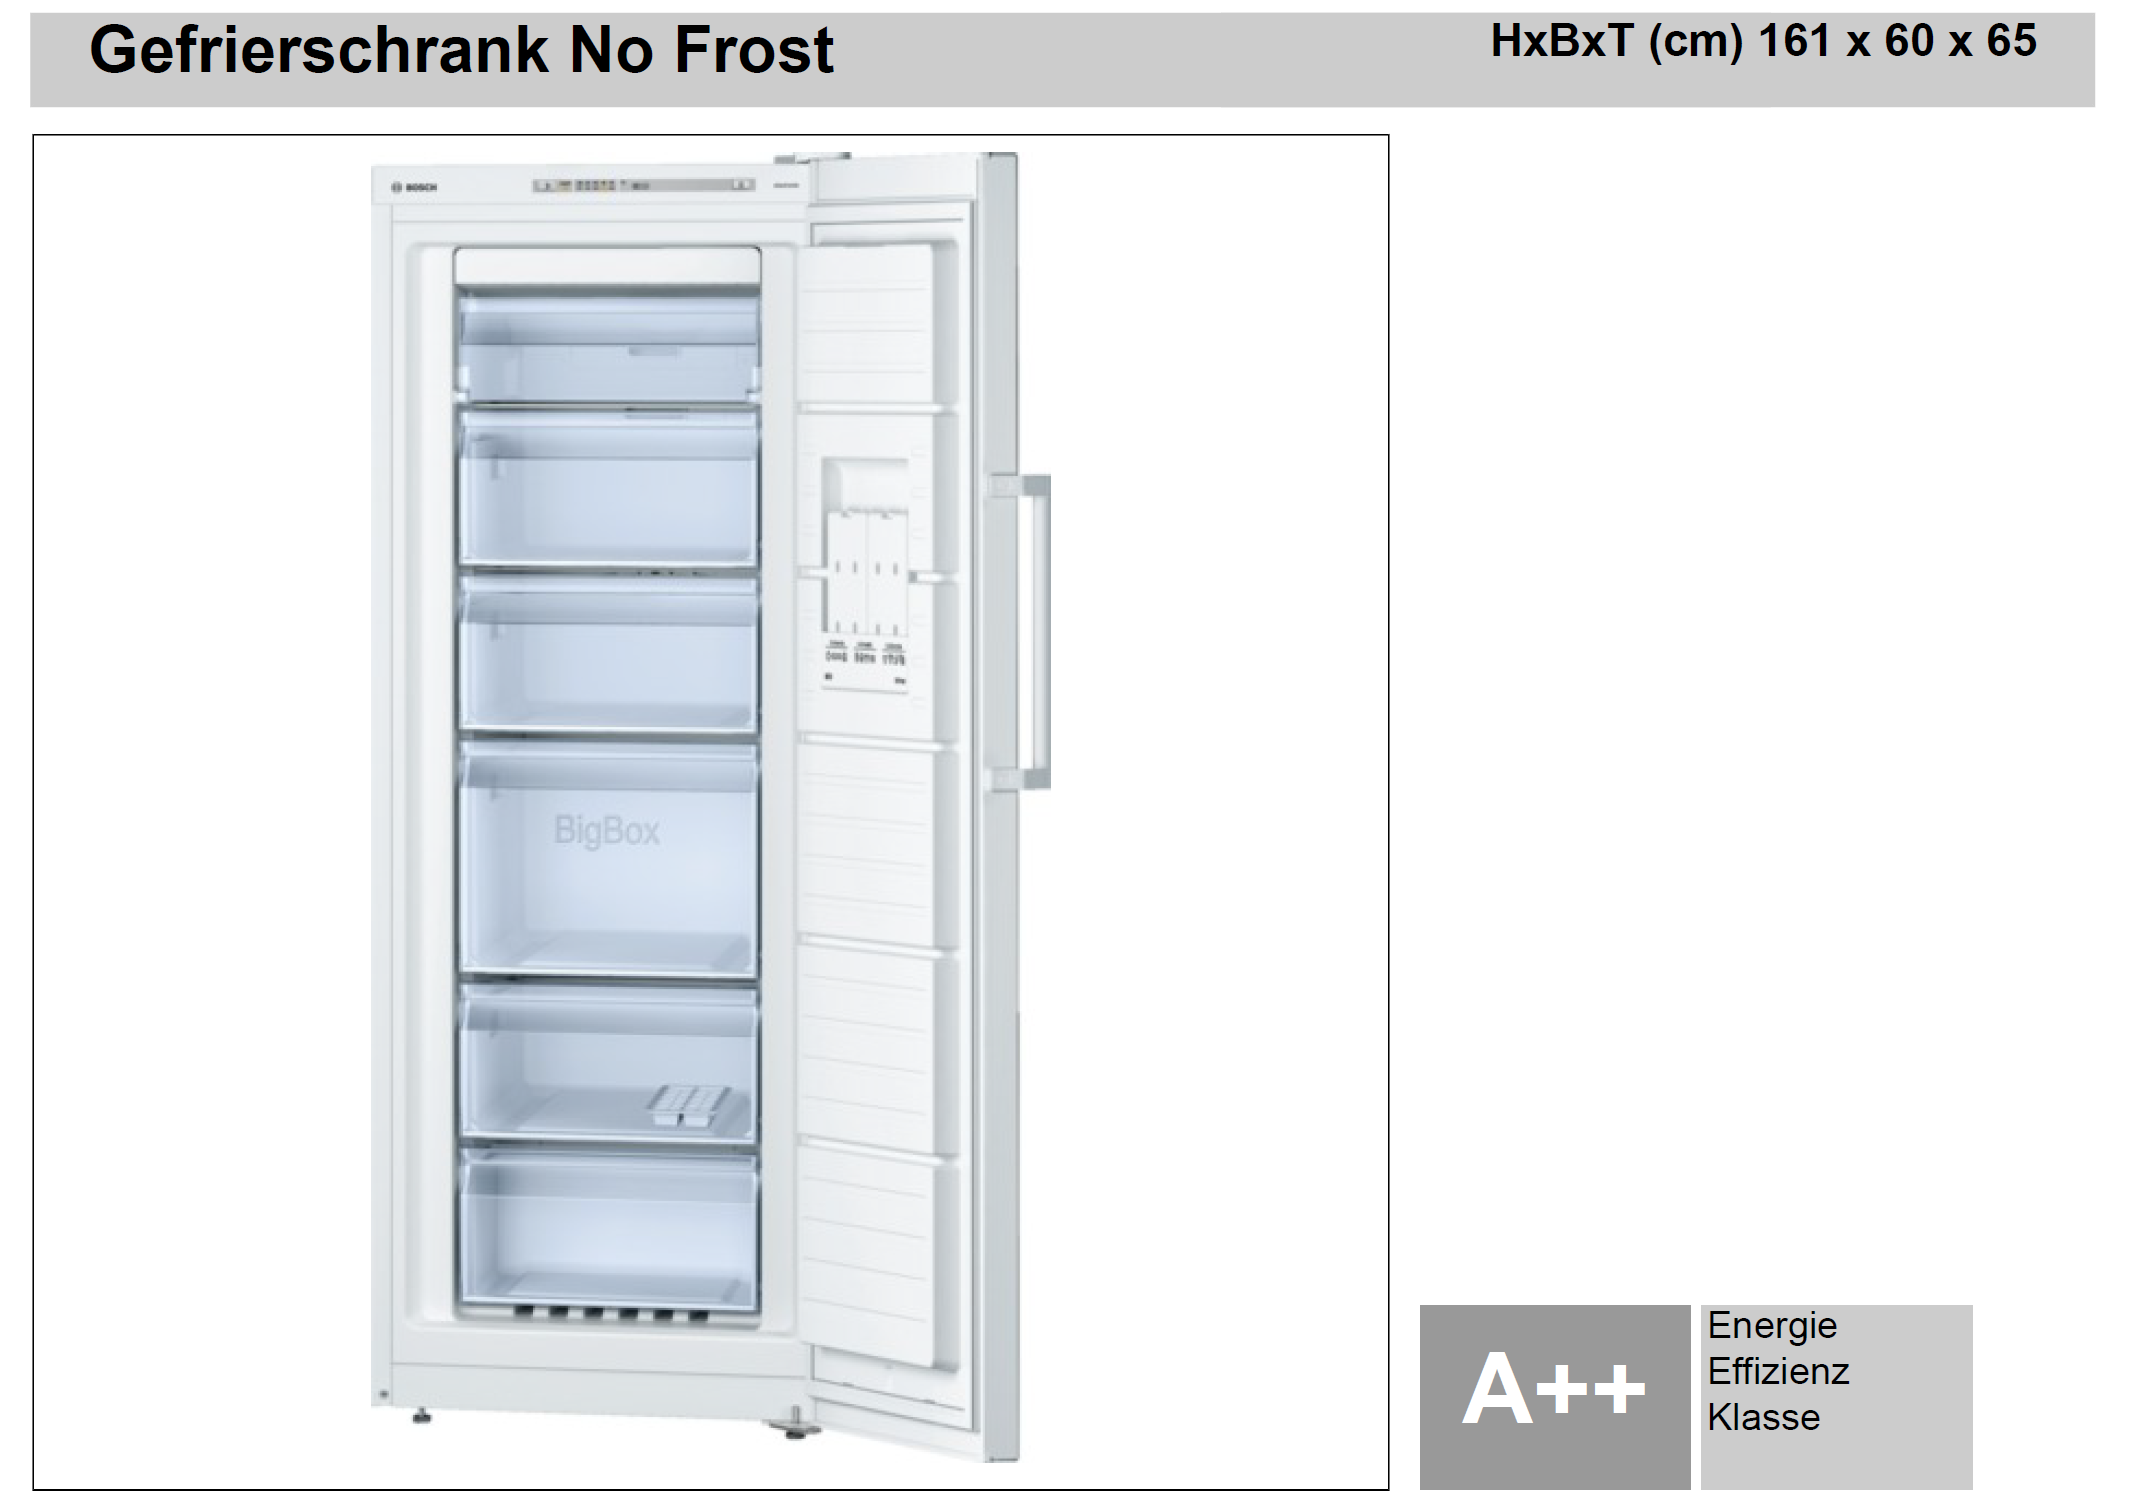 bosch gefrierschrank no frost plan work elektrotechnik. Black Bedroom Furniture Sets. Home Design Ideas